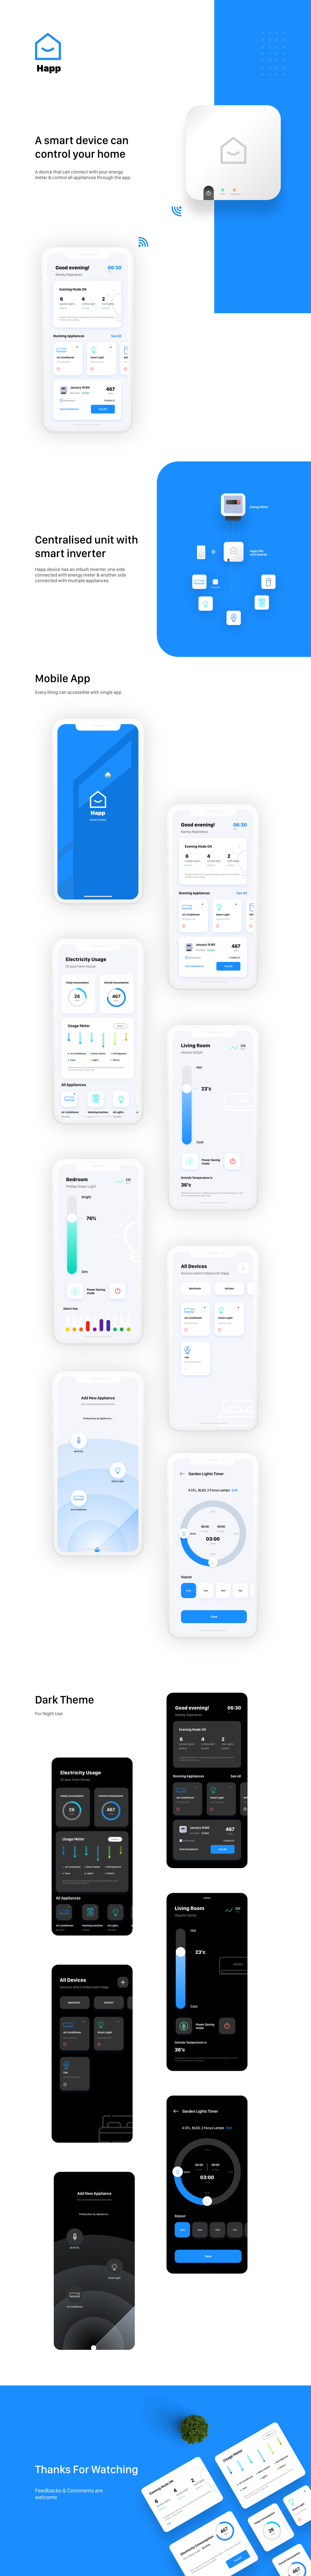 Happ - Smart Home App UI Kit for Adobe XD - Free UI Kit includes dashboard, usage graph, device control, add device, timer, etc